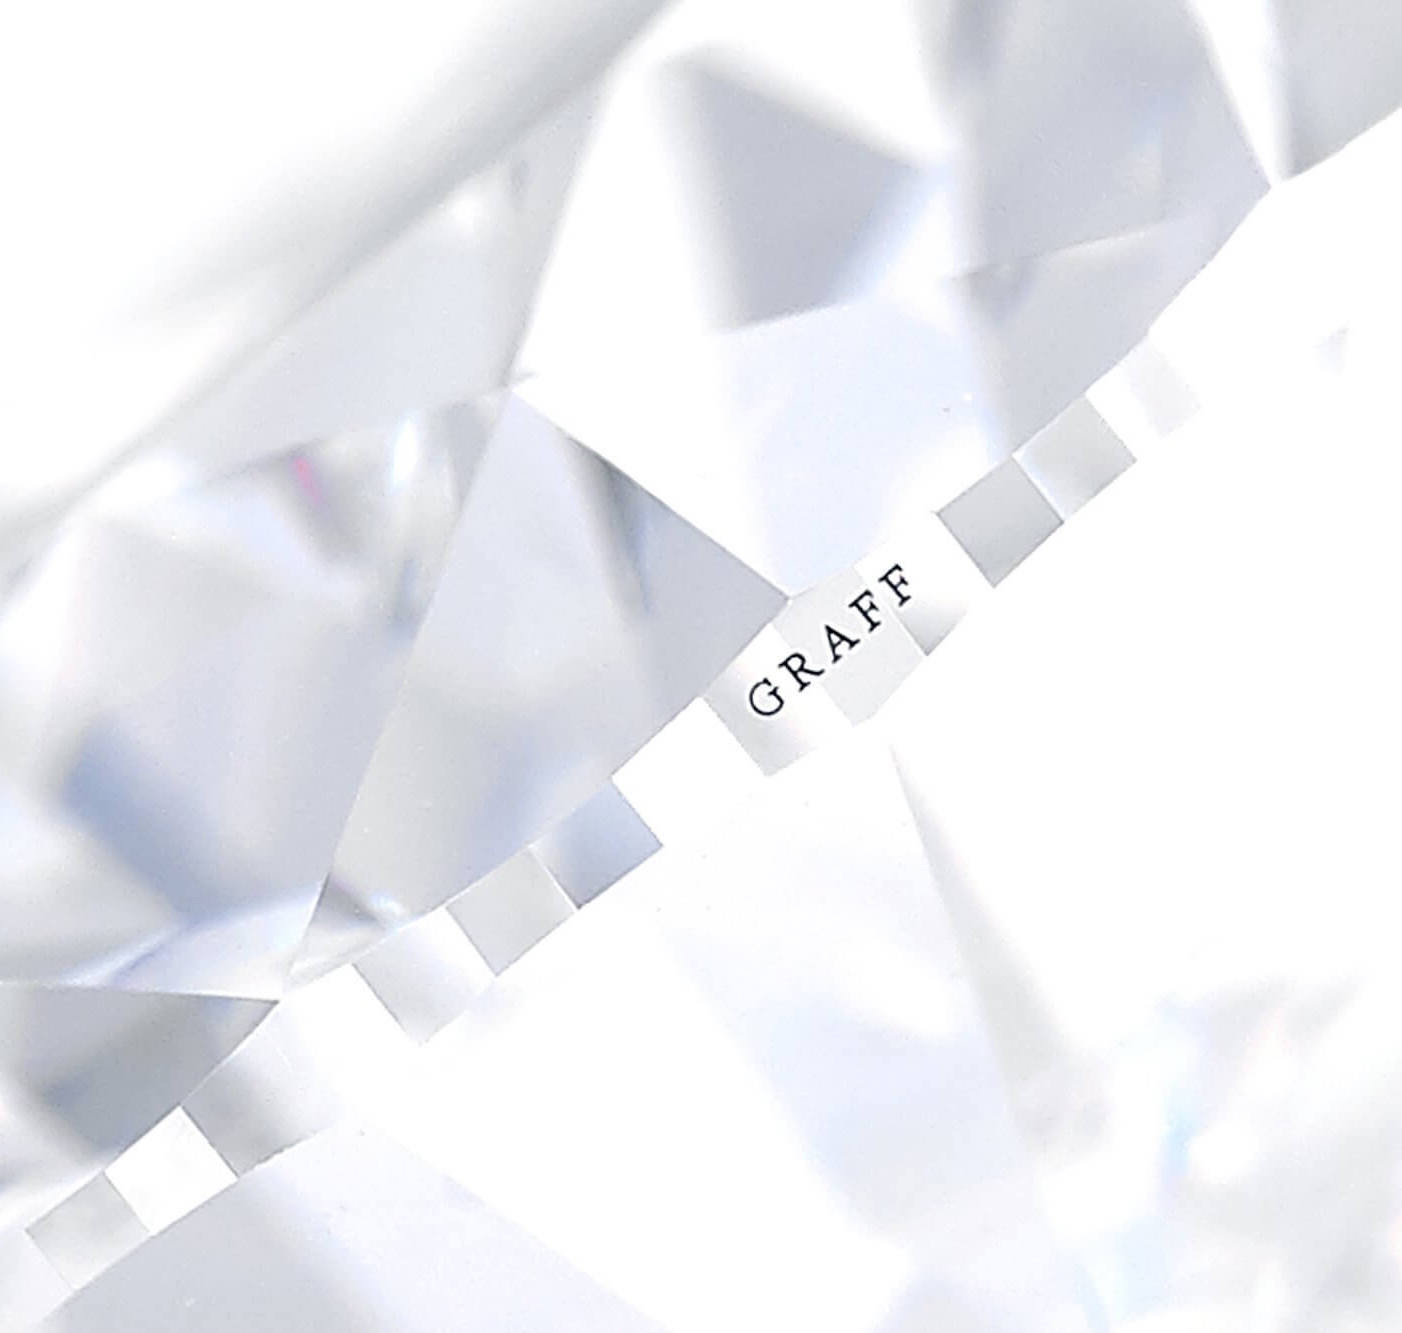 Graff Diamond engraved with Graff name